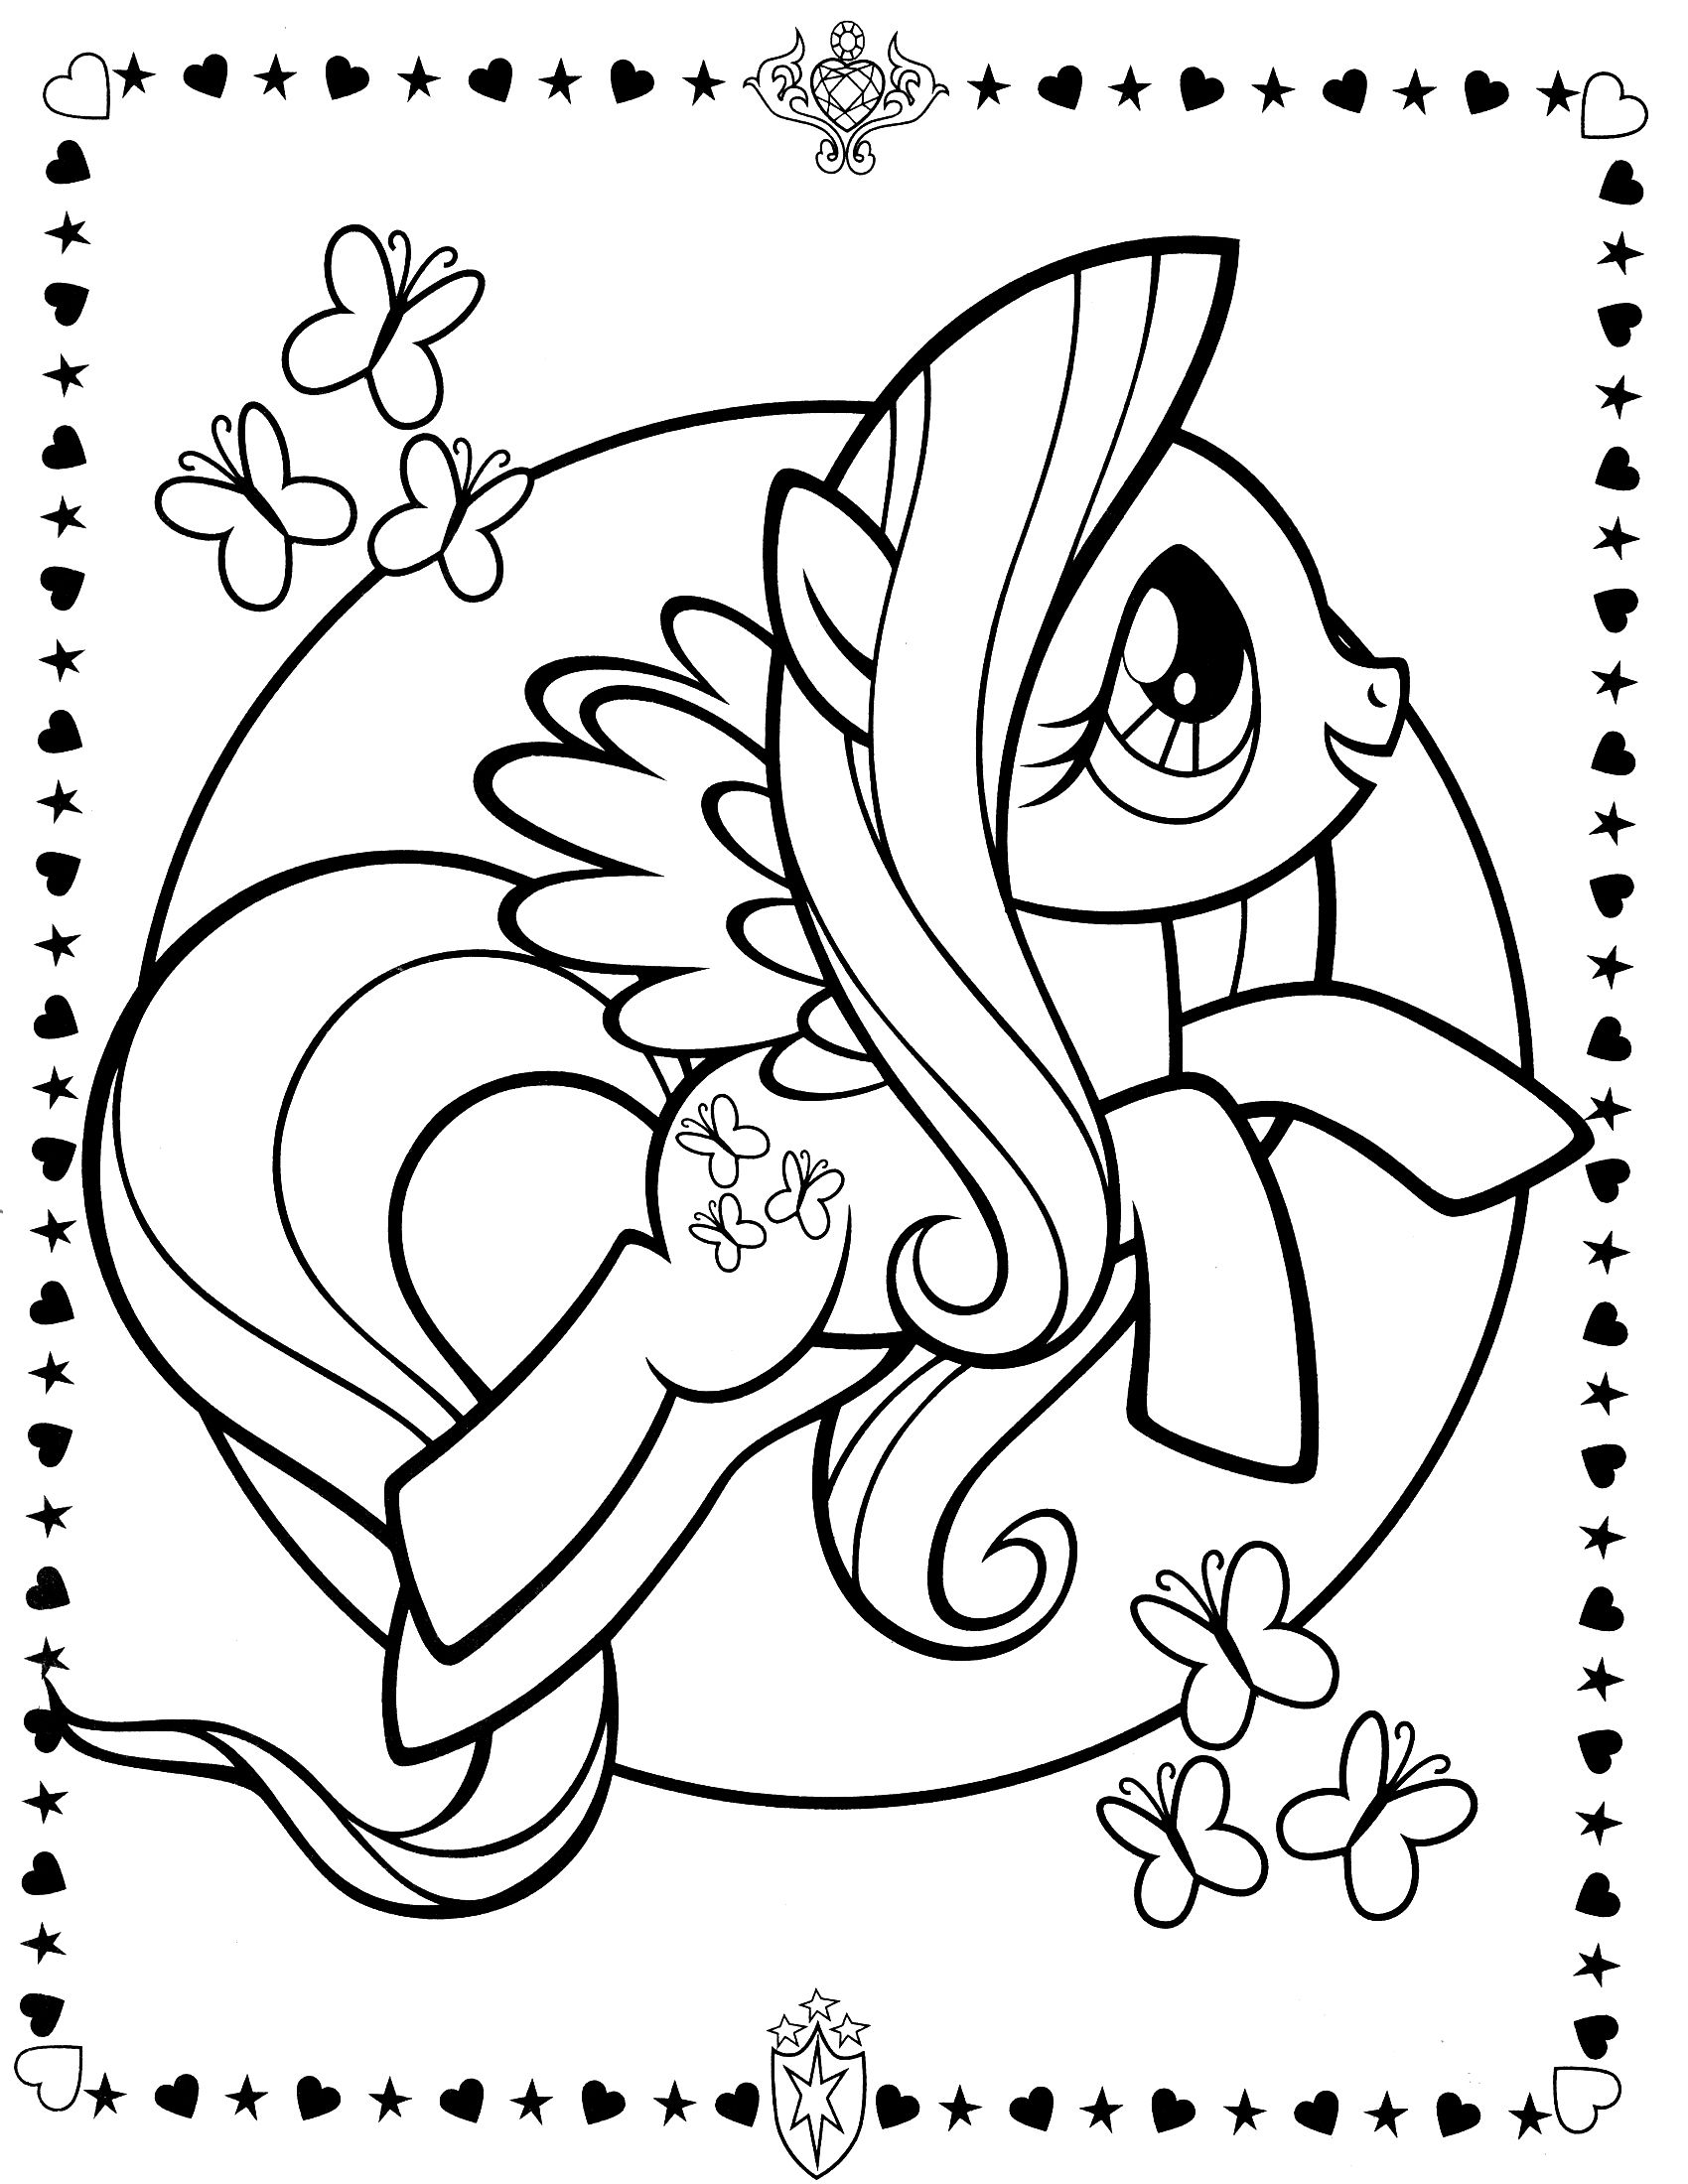 New my little pony coloring sheets